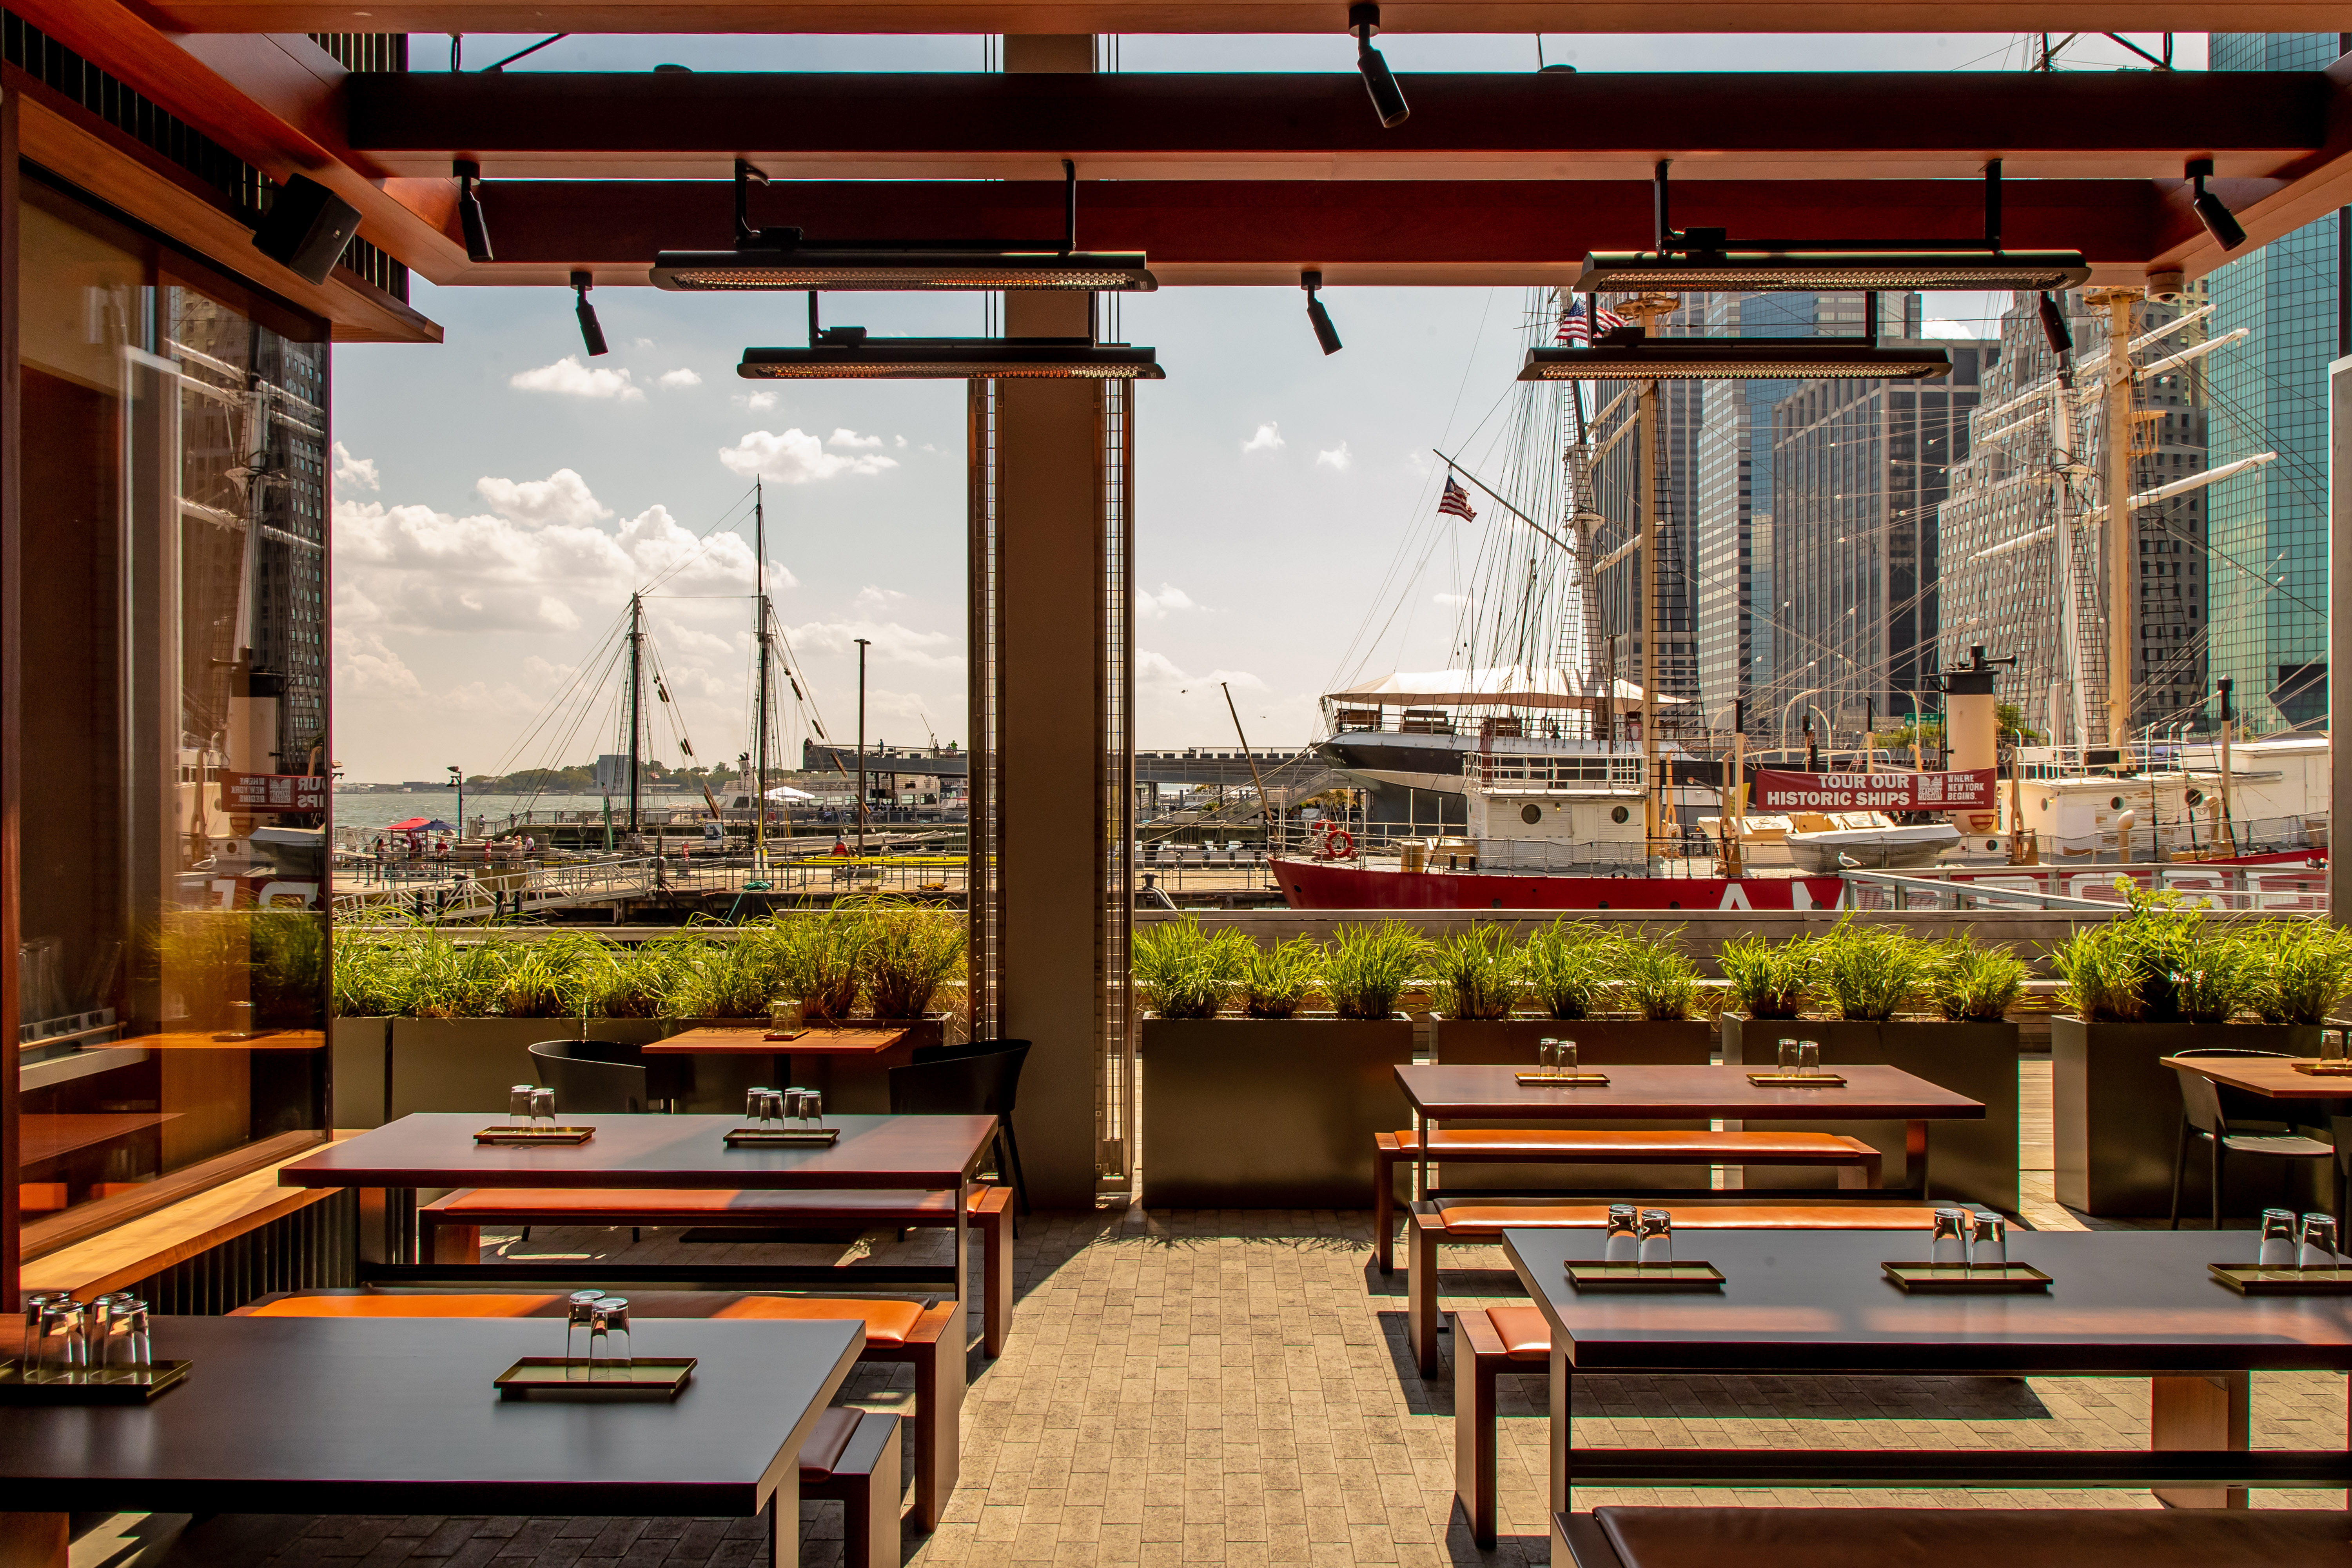 Momofuku's New Waterside Bar Is a Freewheeling Win for the Seaport